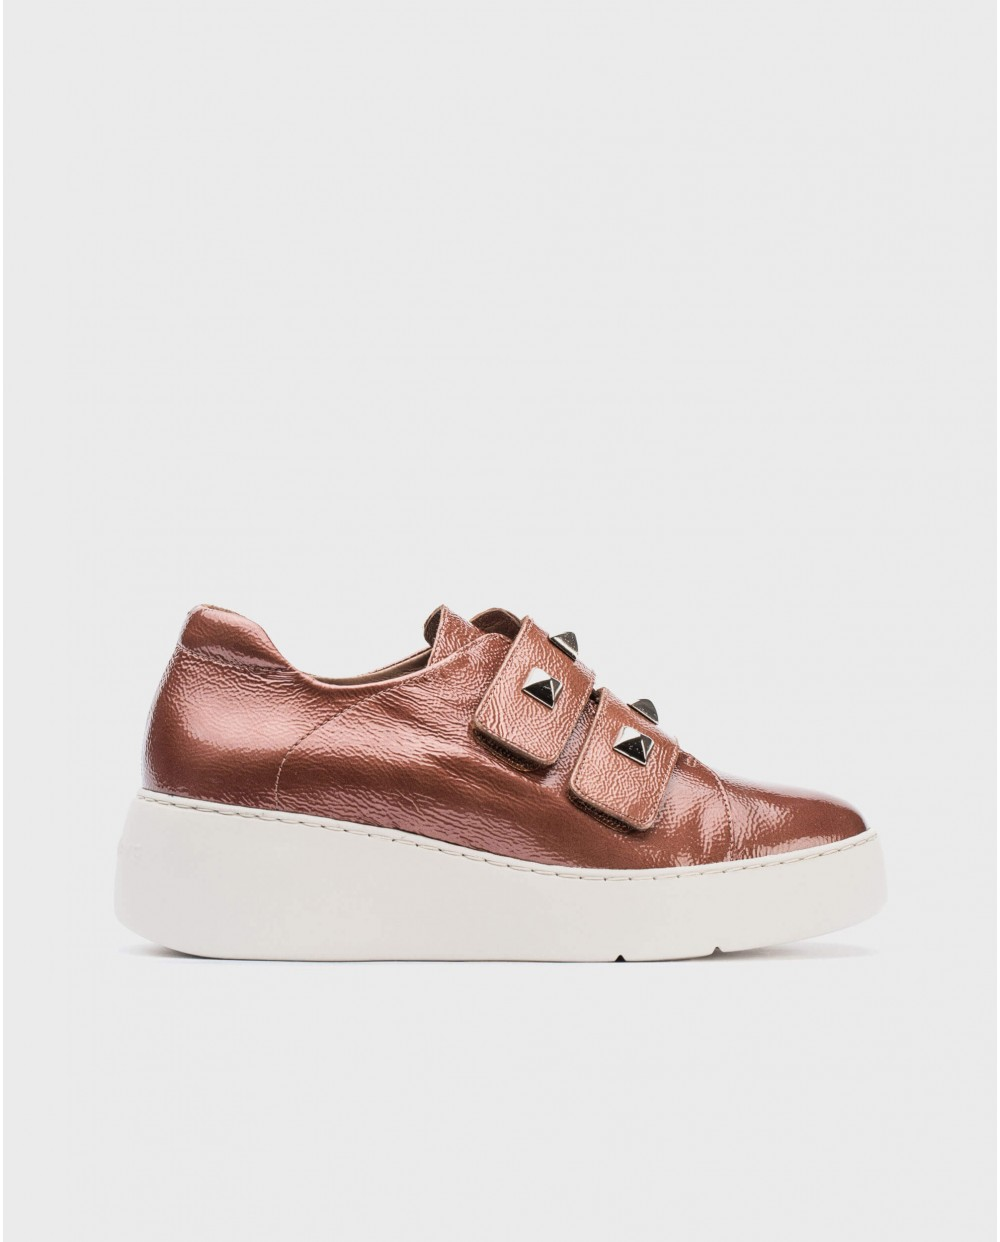 Wonders-Sneakers-Leather sneaker with Velcro straps